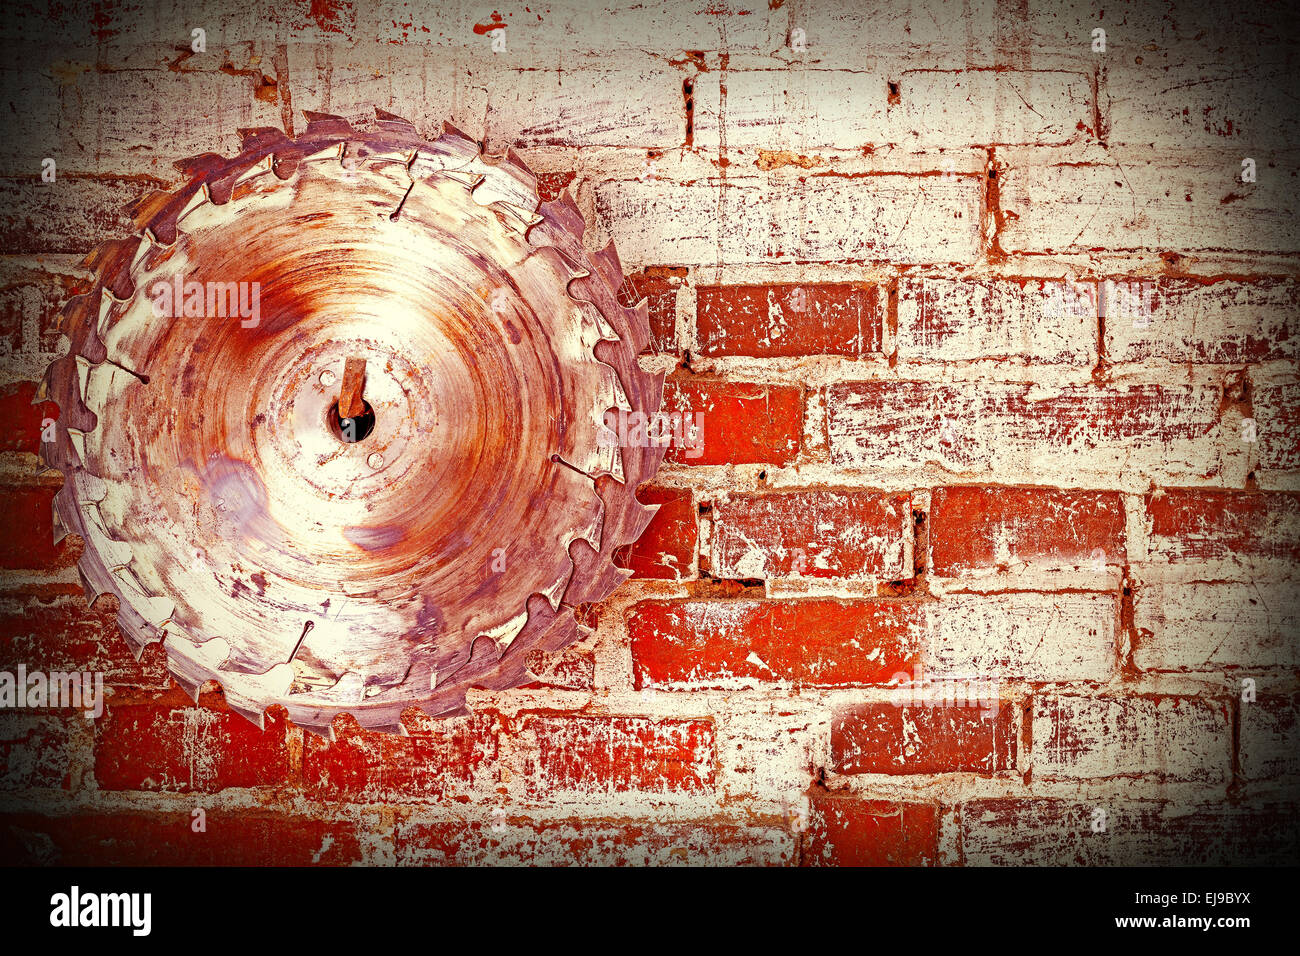 Circular saw blade on a grungy brick wall, background or texture. - Stock Image